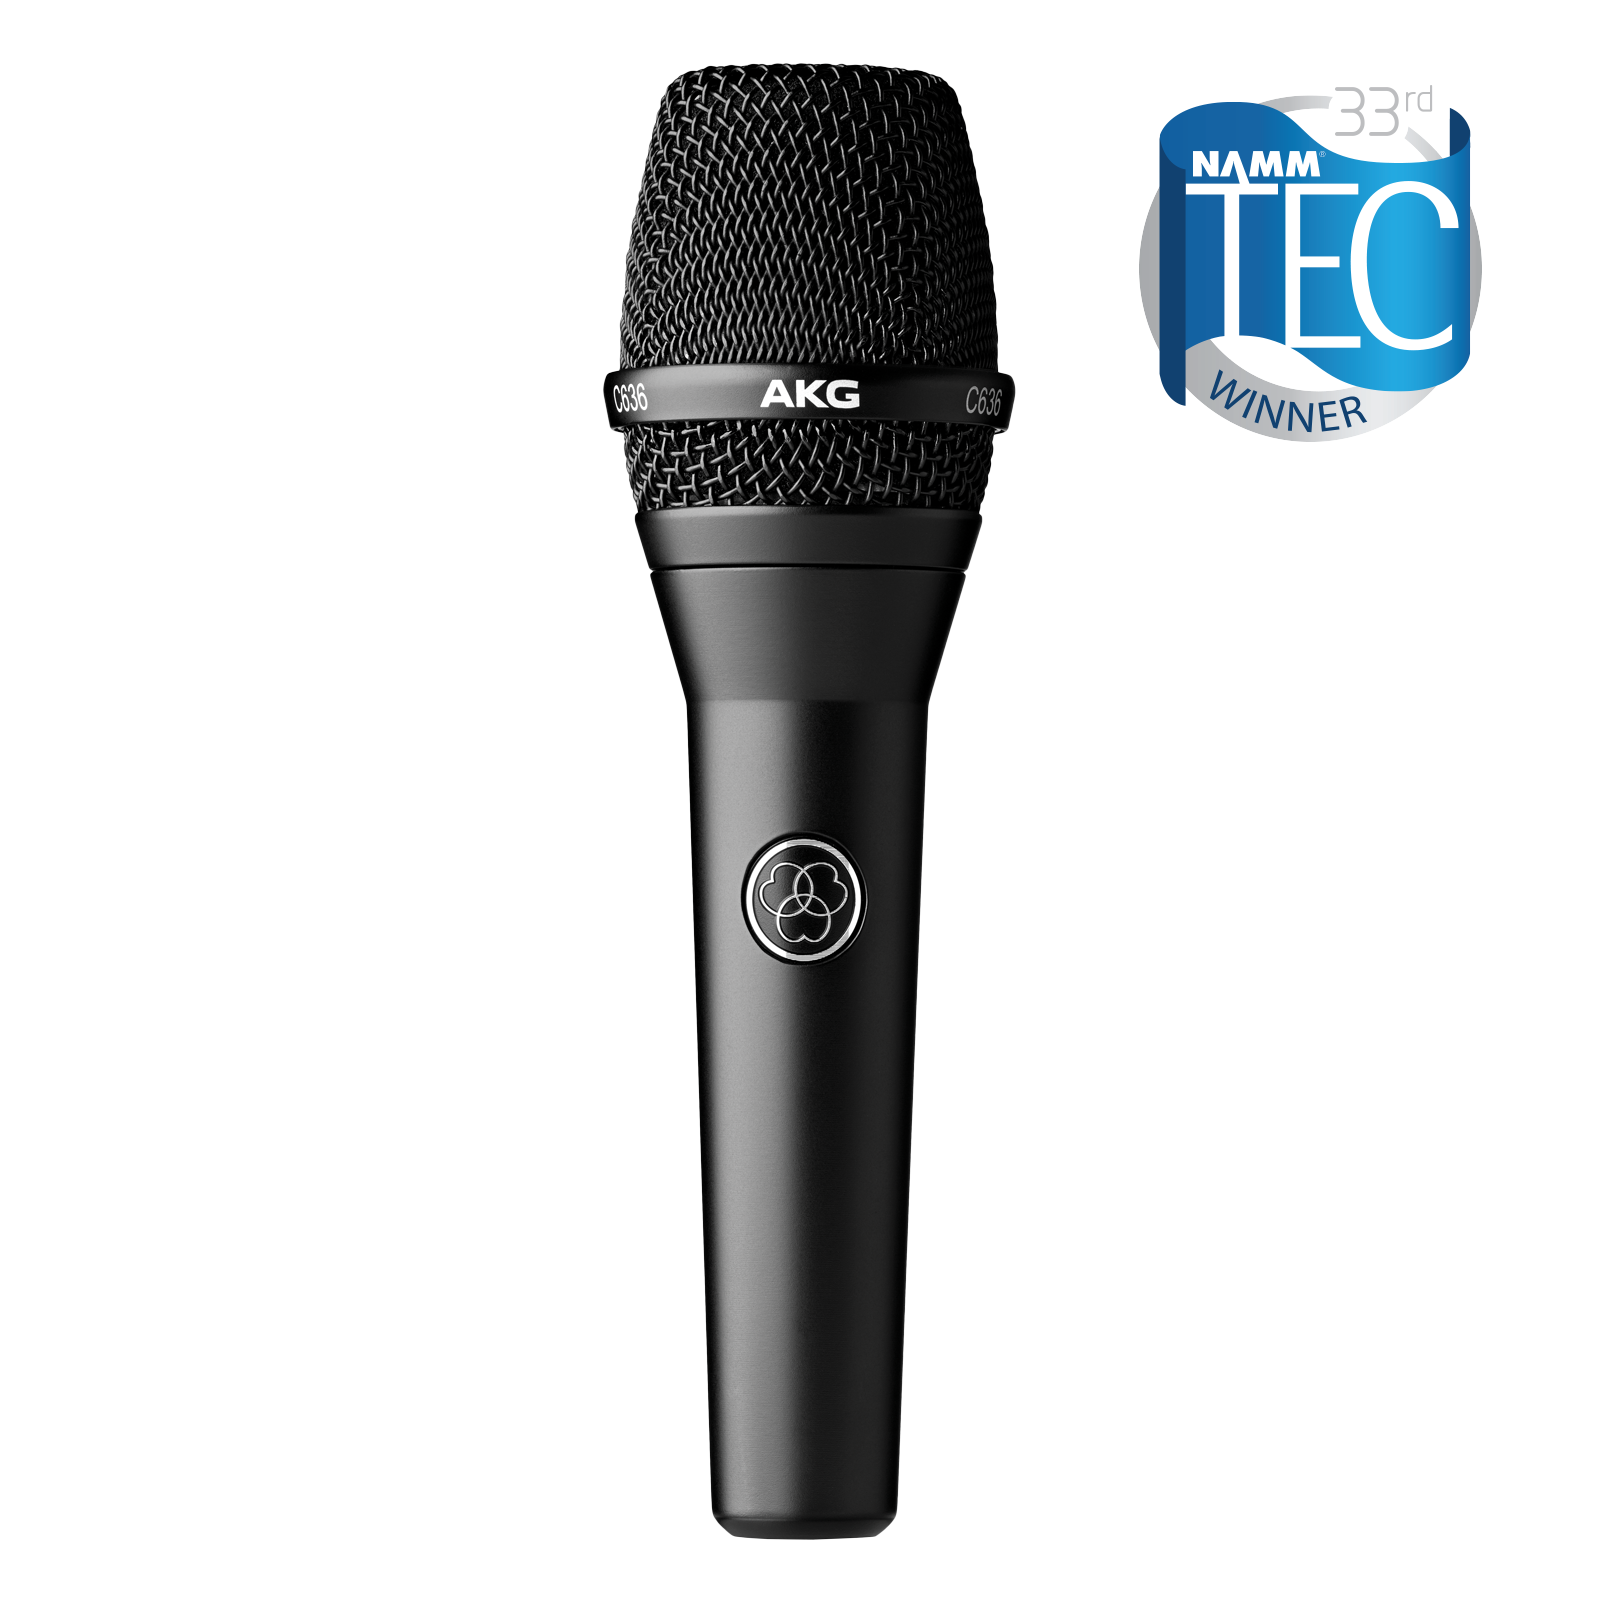 AKG C636 Handheld Vocal Microphone Black - 305broadcast